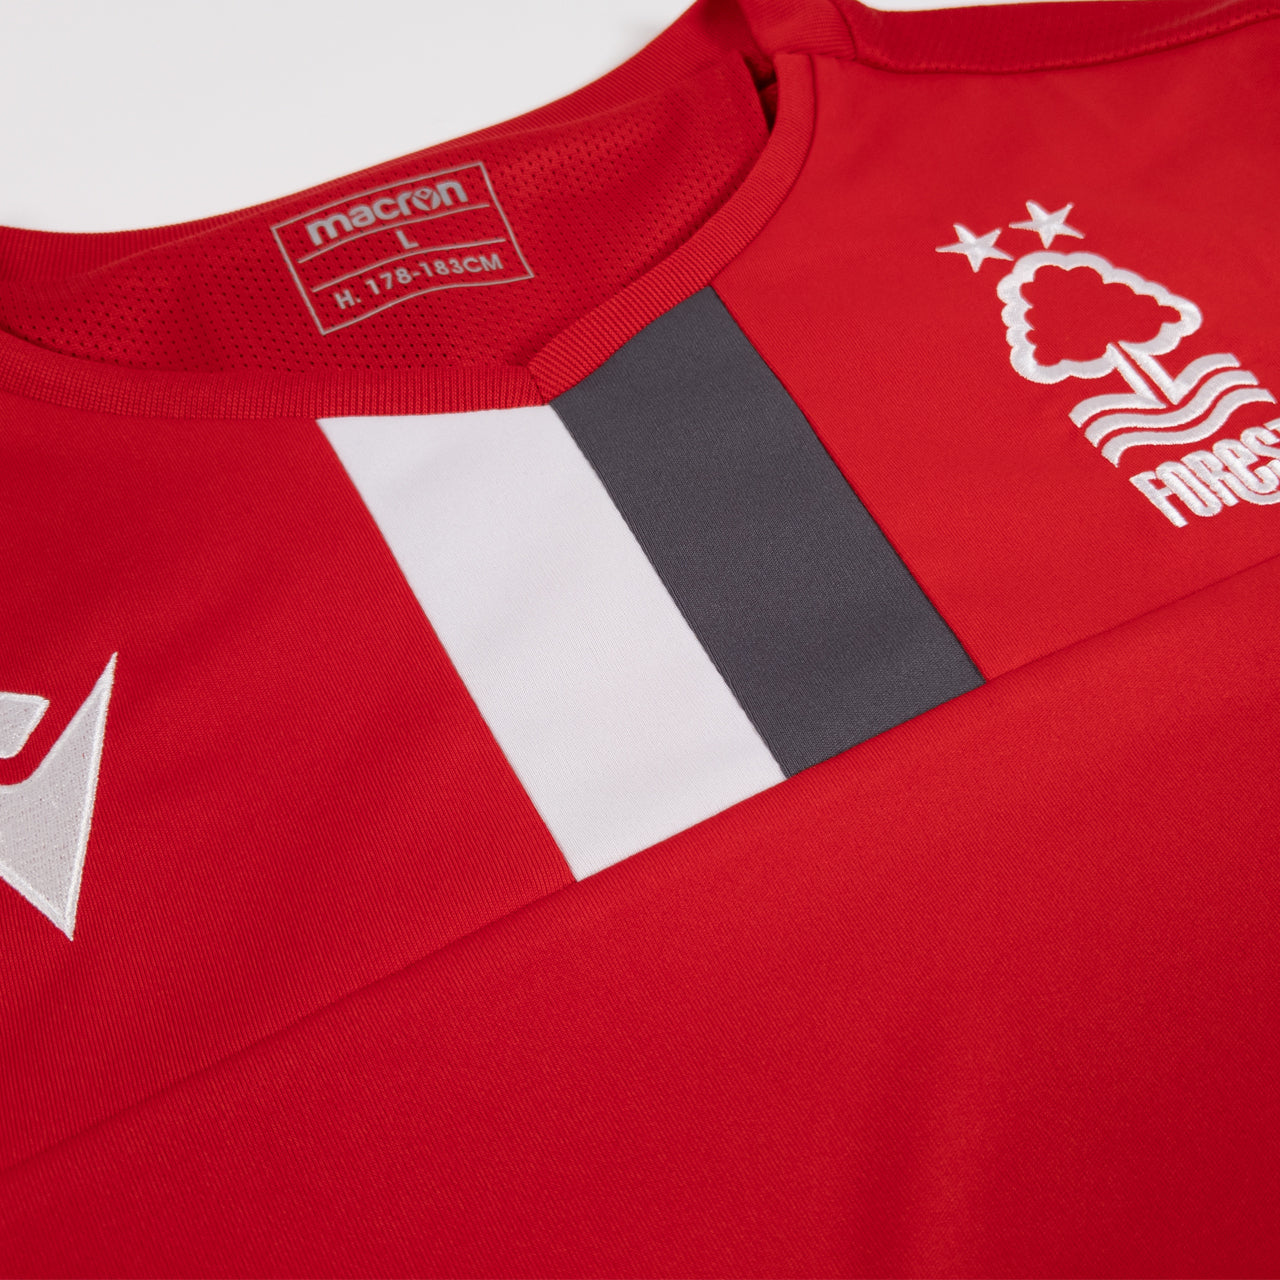 NFFC Junior Player Training Jersey 19/20